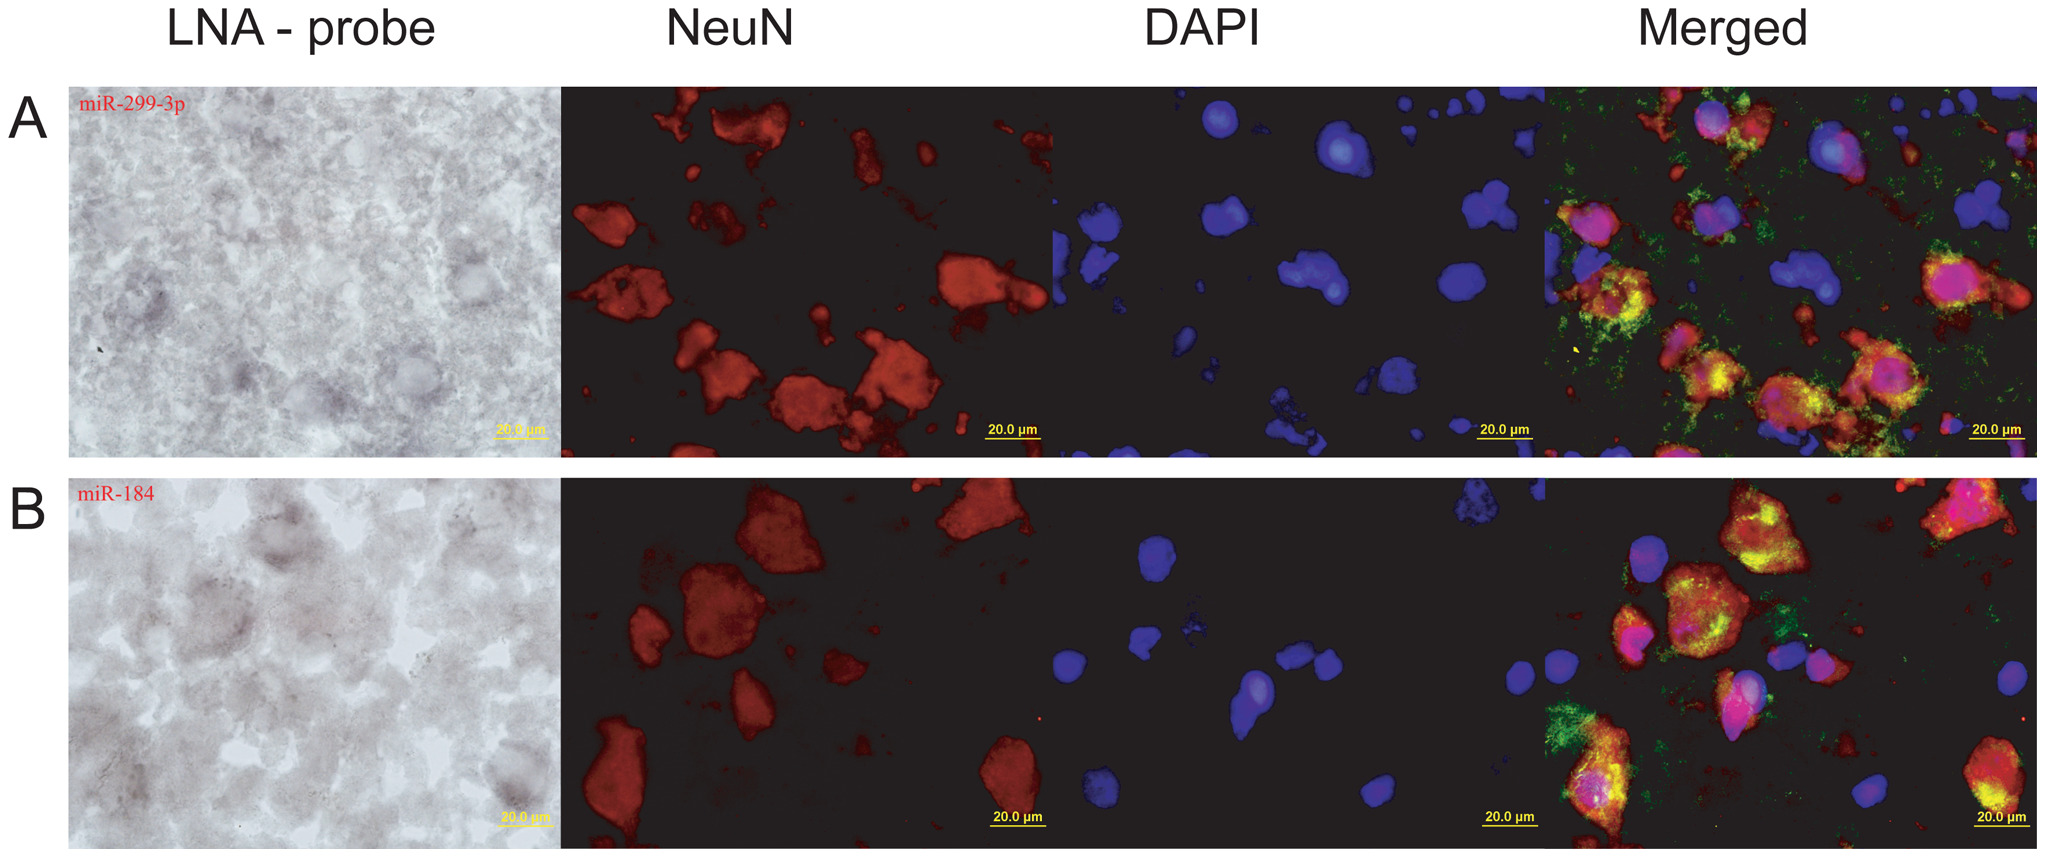 <i>In situ</i> staining of miR-184 and miR-299-3p in prefrontal cortex.